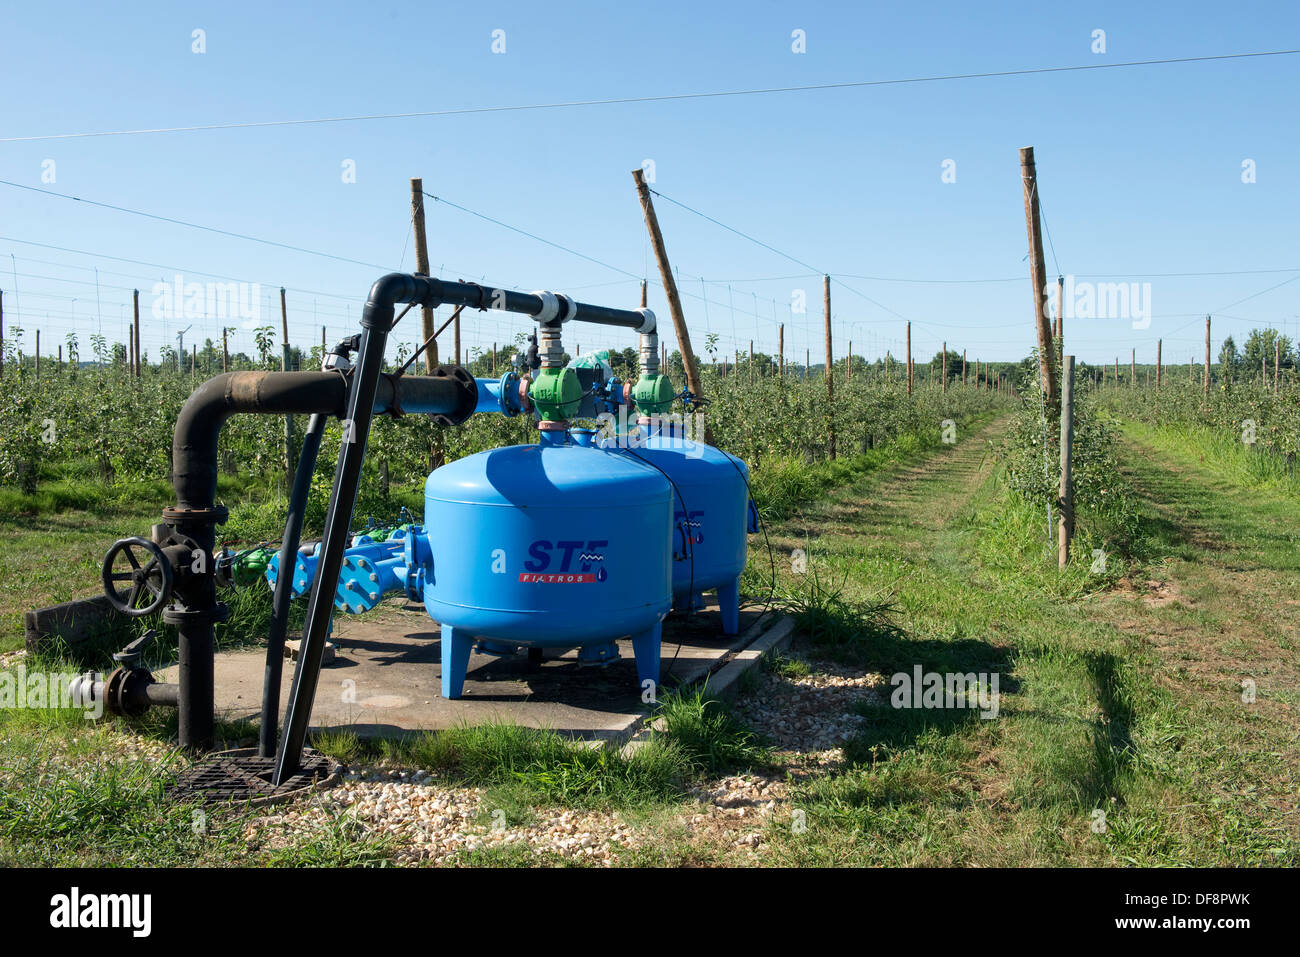 Irrigation and fertigation pump for cordon apple trees at Sainte-Foy-la-Grande, France - Stock Image